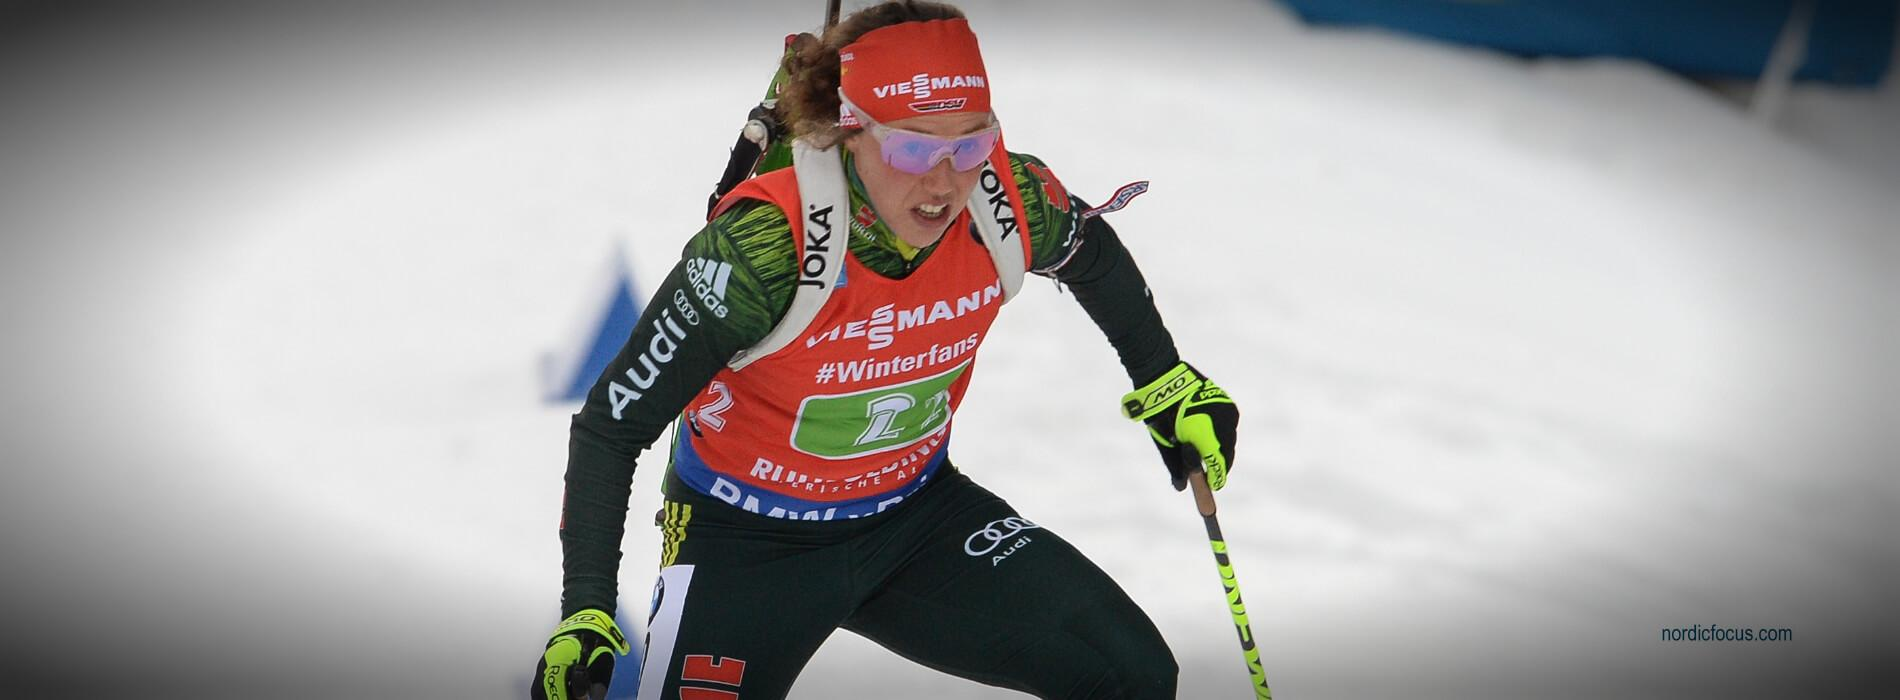 Laura Dahlmeier Antholz 2019